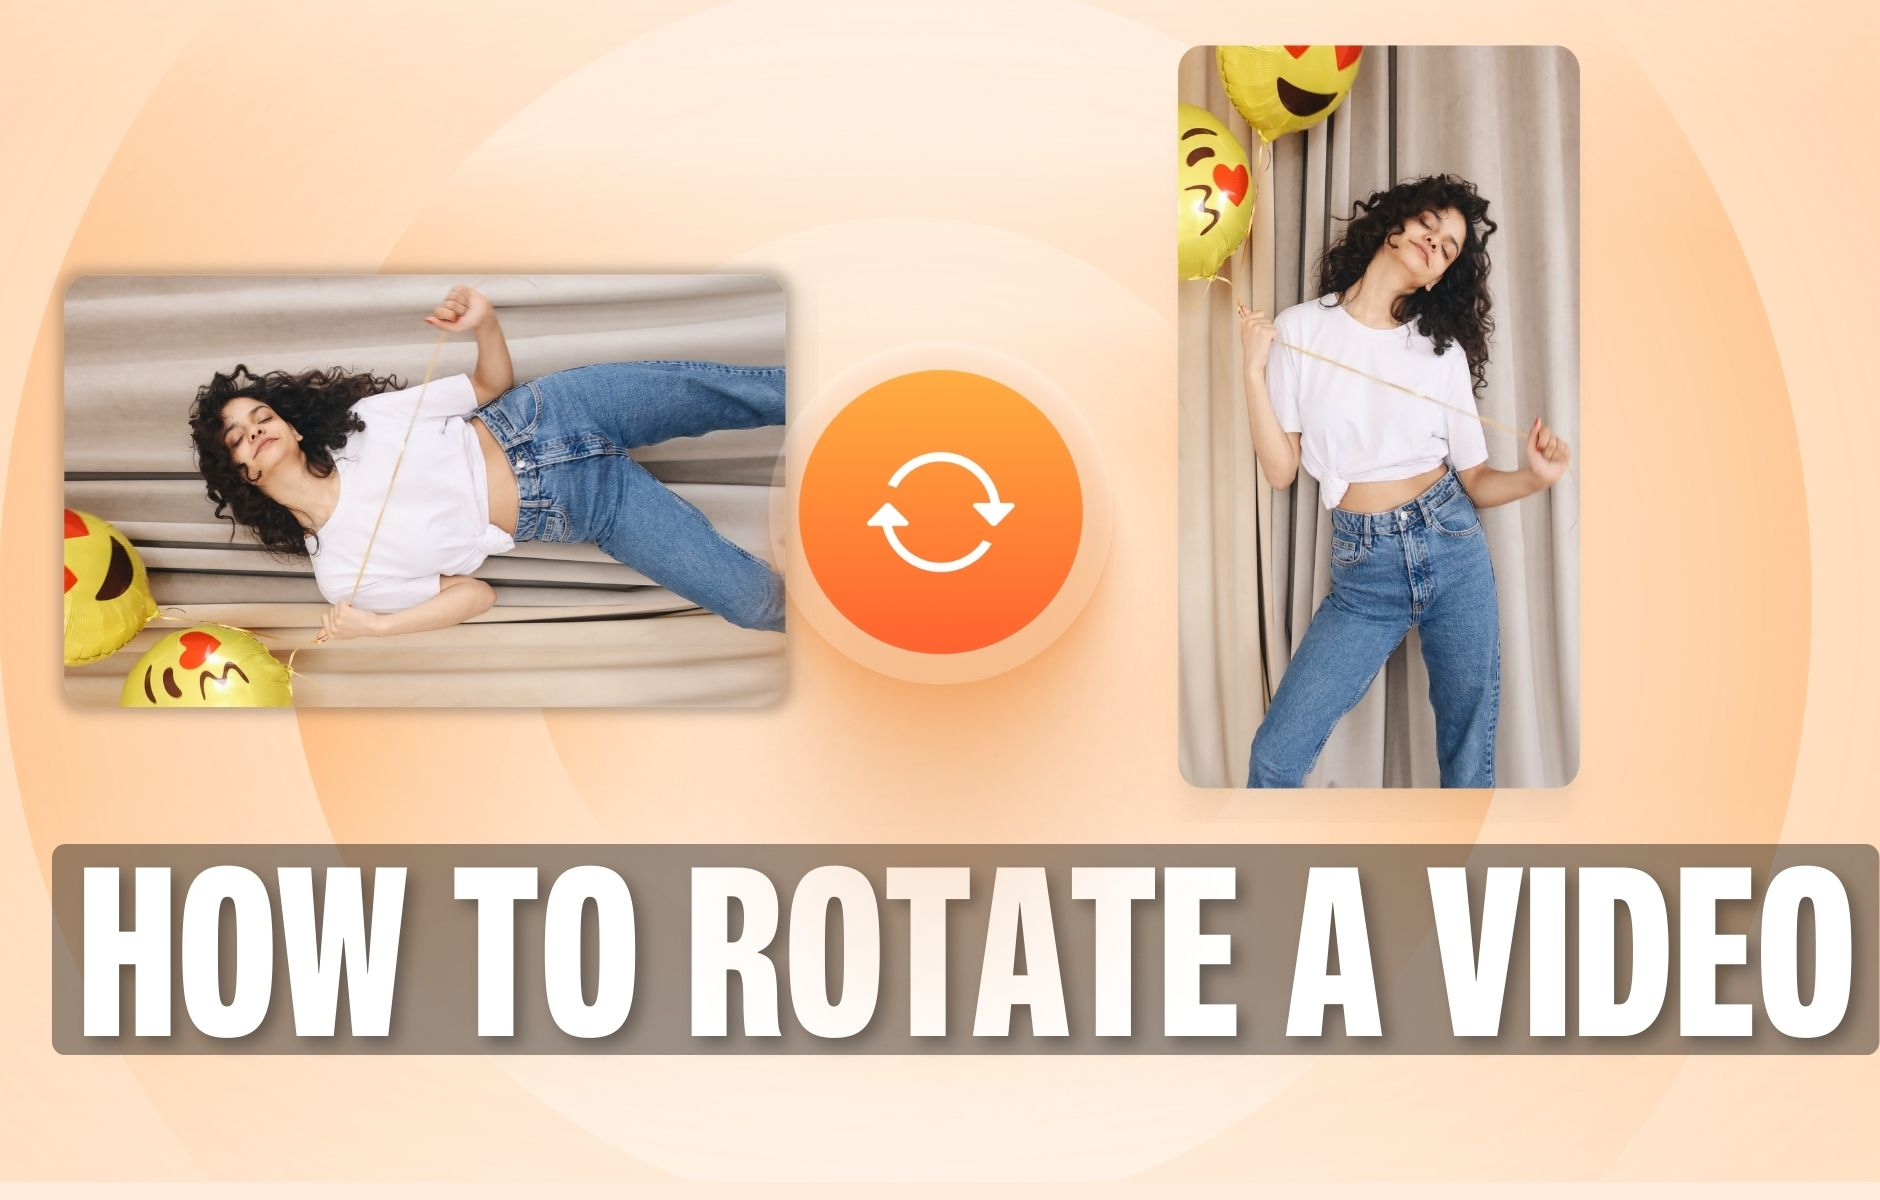 How to Rotate a Video — 6 Quick & Easy Ways